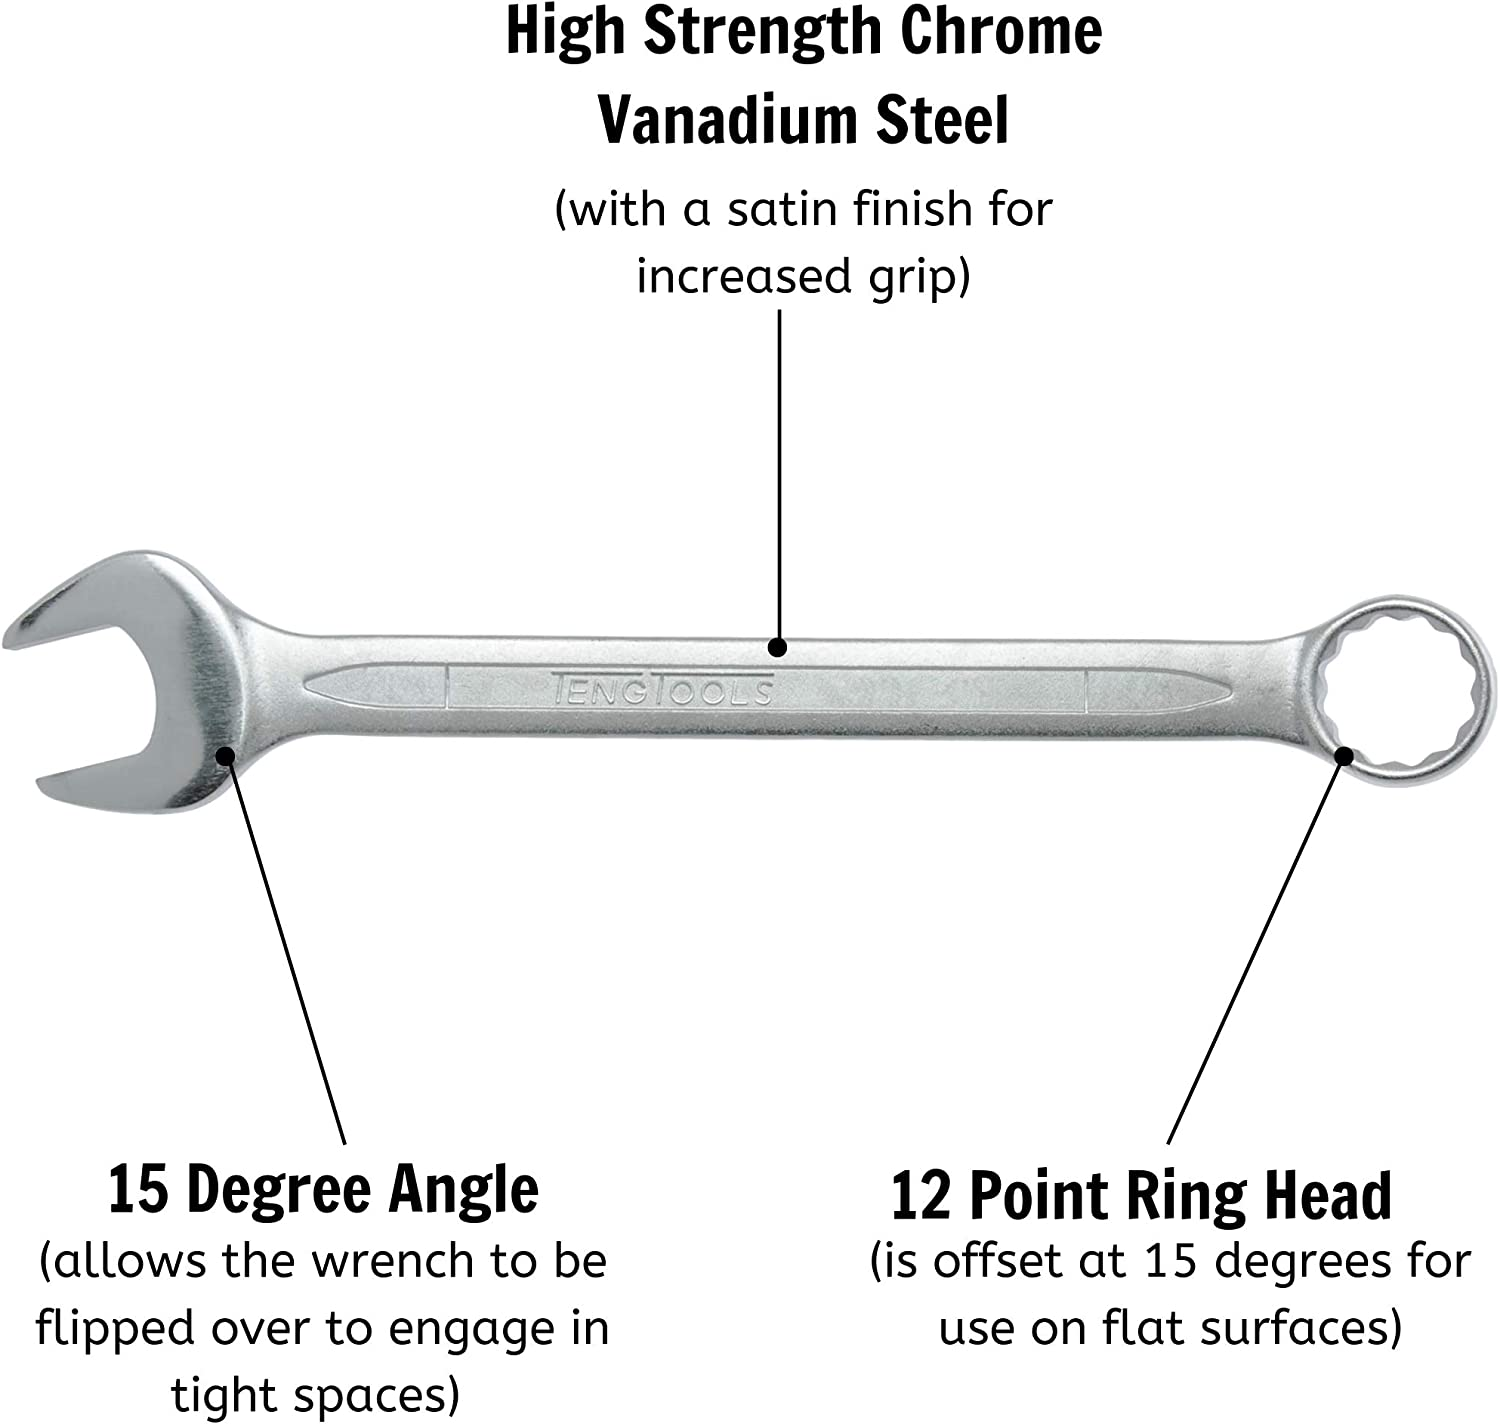 Teng Tools 20mm Metric Combination Open and Box End Spanner Wrench 600520